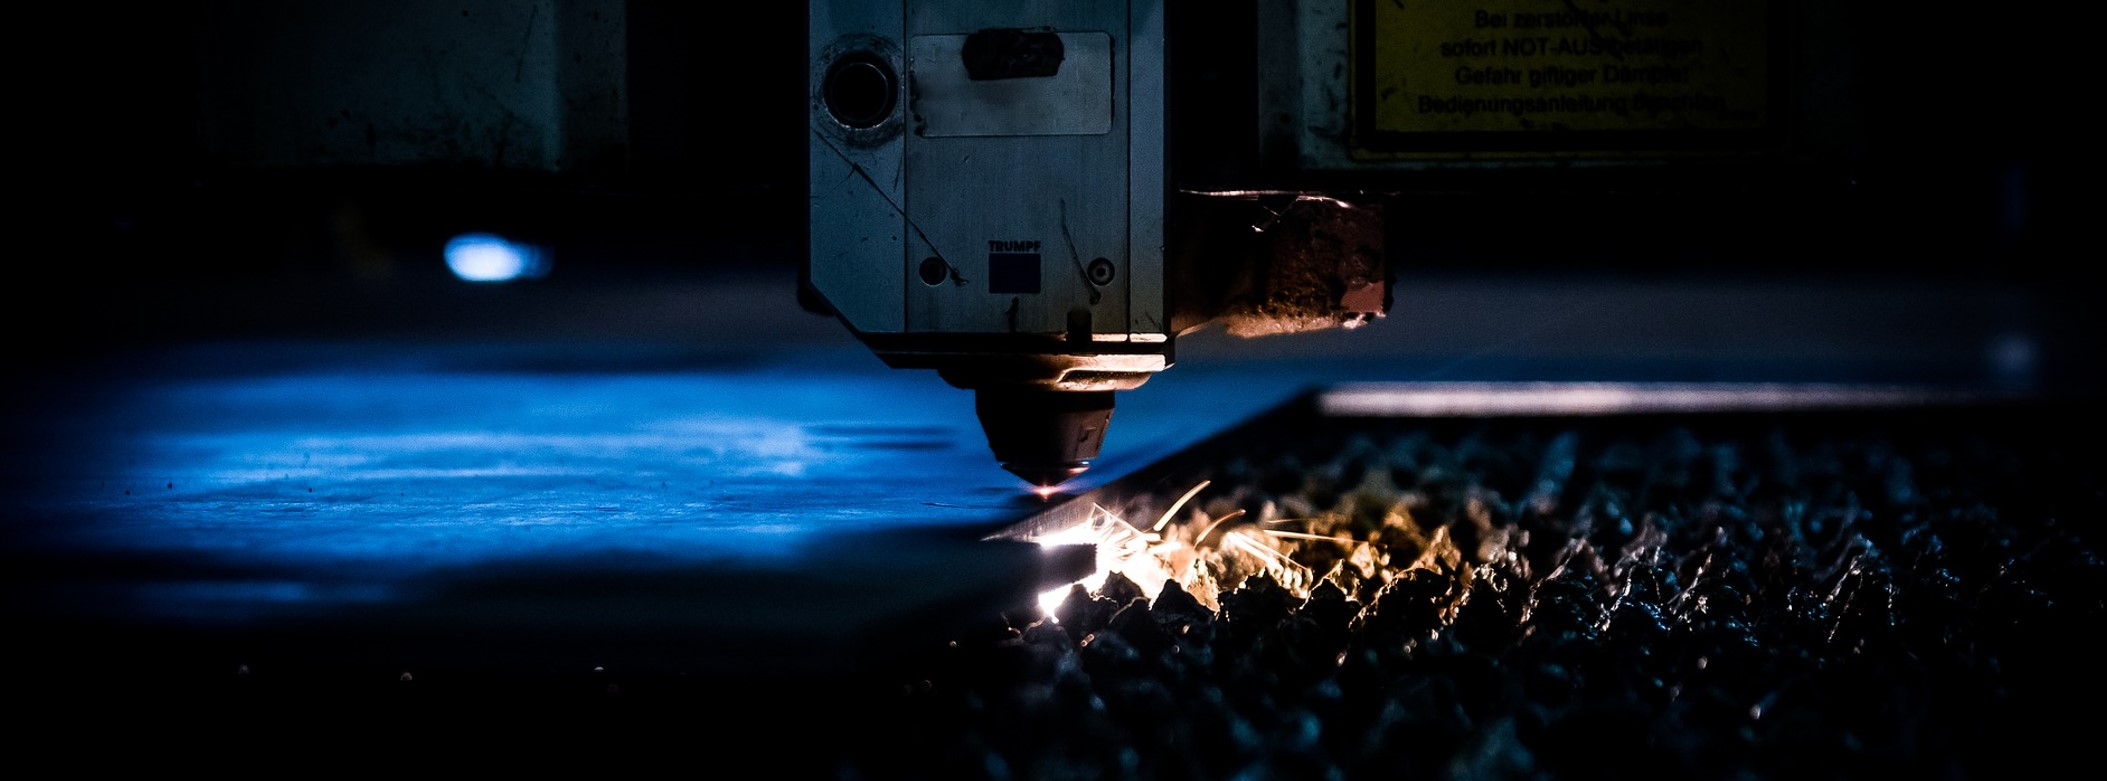 Sheet Metalwork Fabrication services